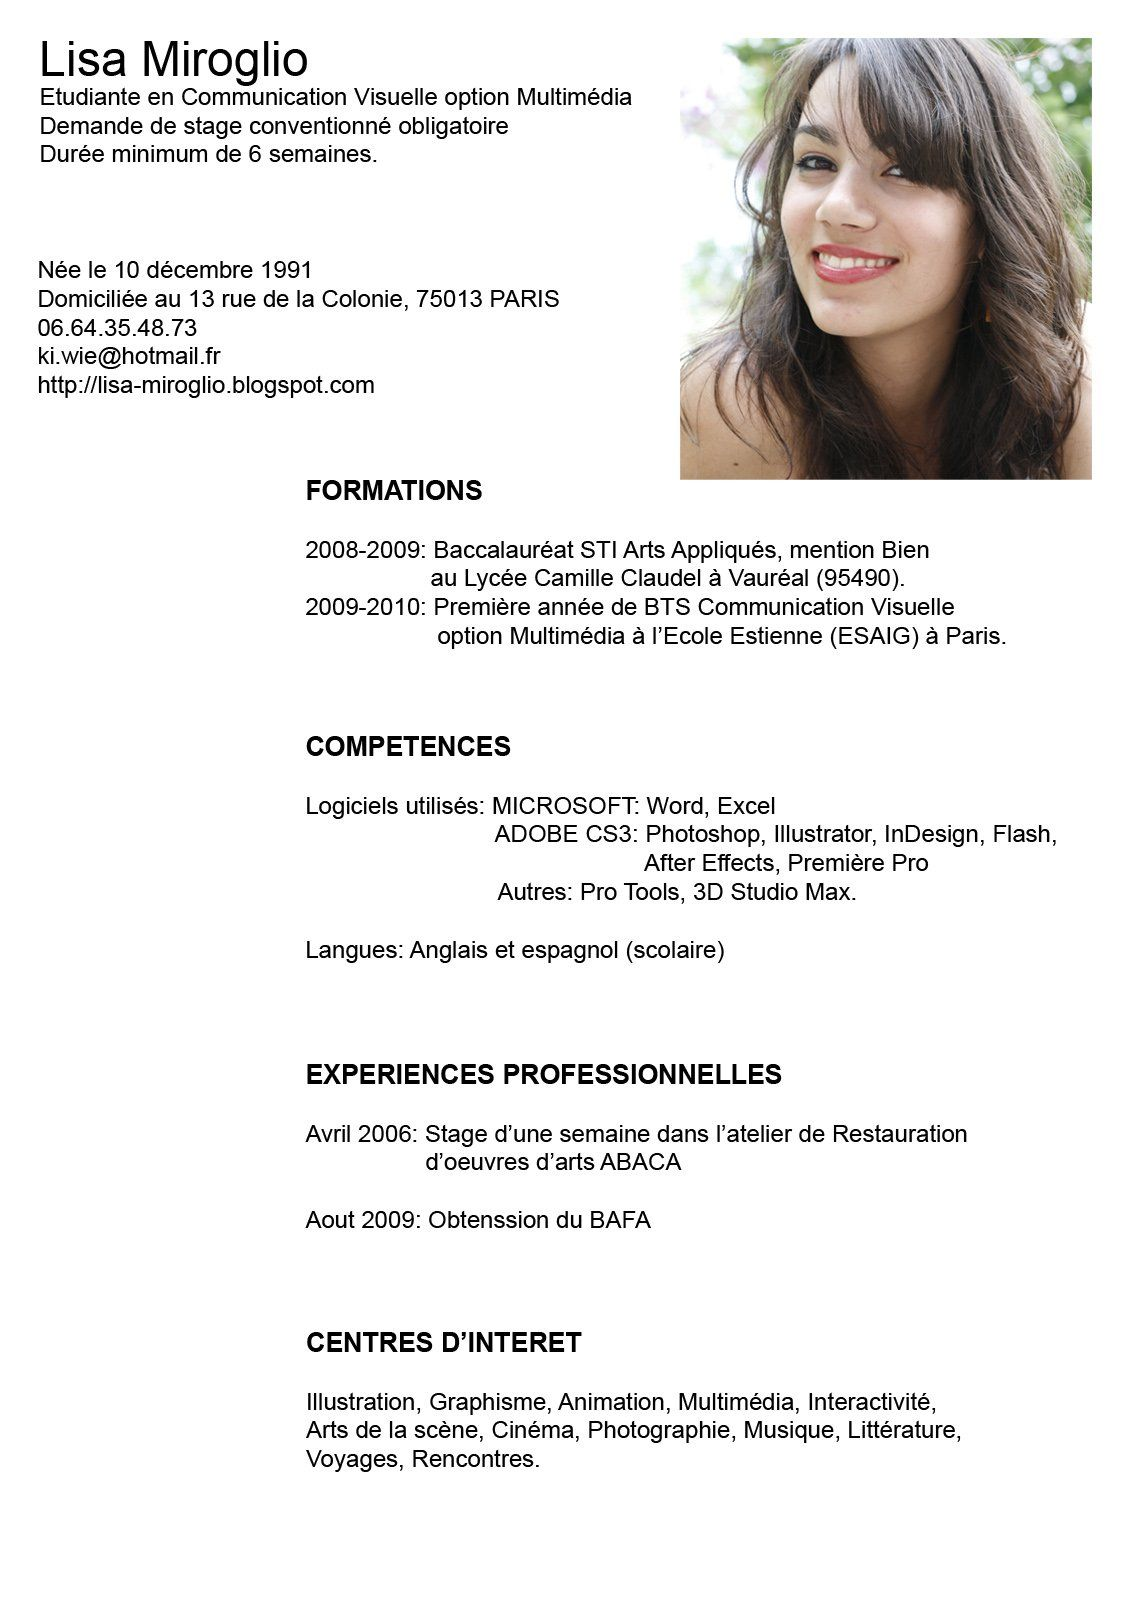 maria garcia sample resume ideas mickey mouse student education__cat__